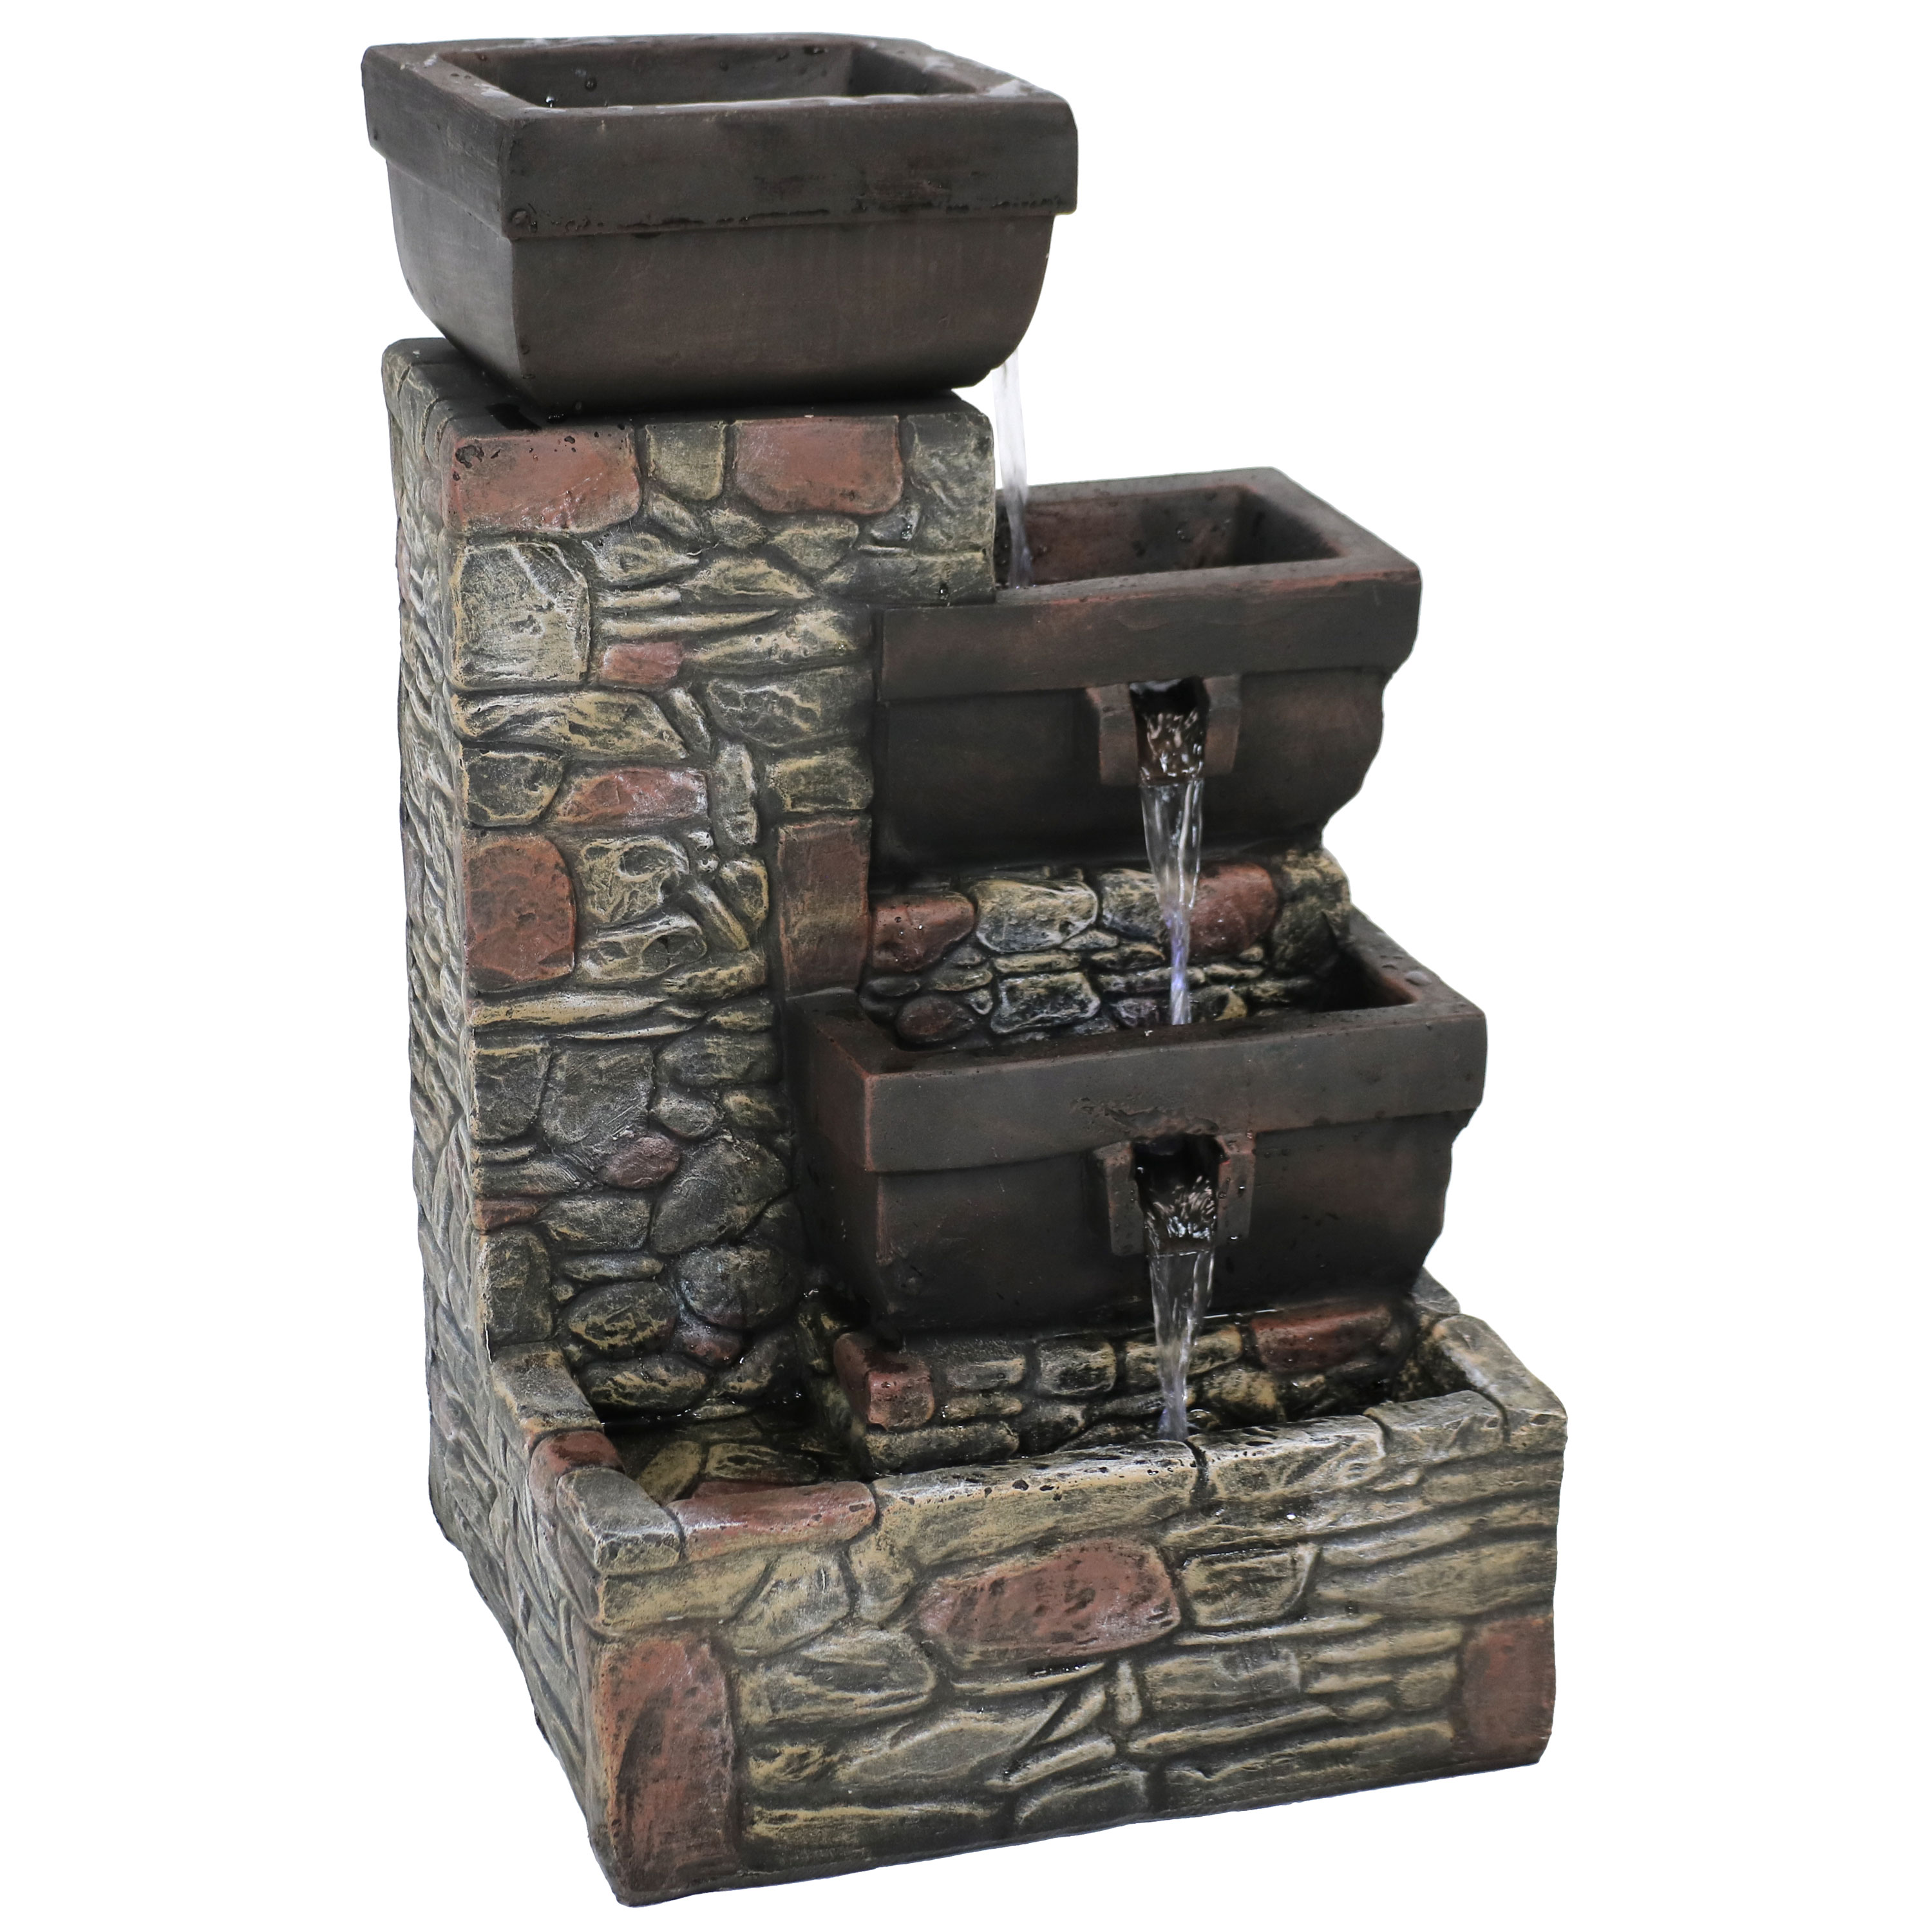 Cascading Waterfall Fountain Led Lights Patio Garden Water Stacked Stone Square Bowls Tall Photo